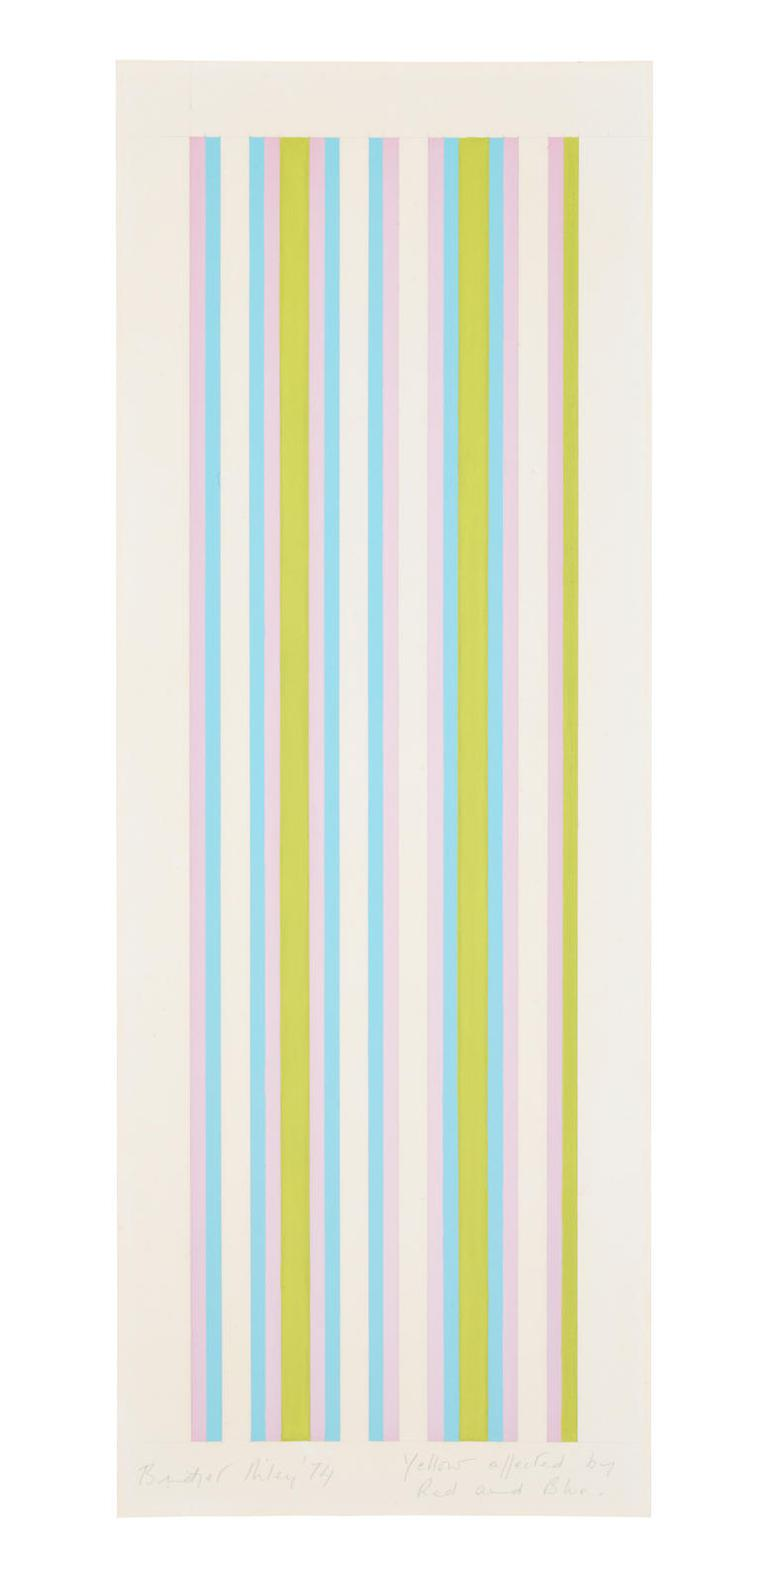 Bridget Riley-Yellow Affected By Red And Blue-1974